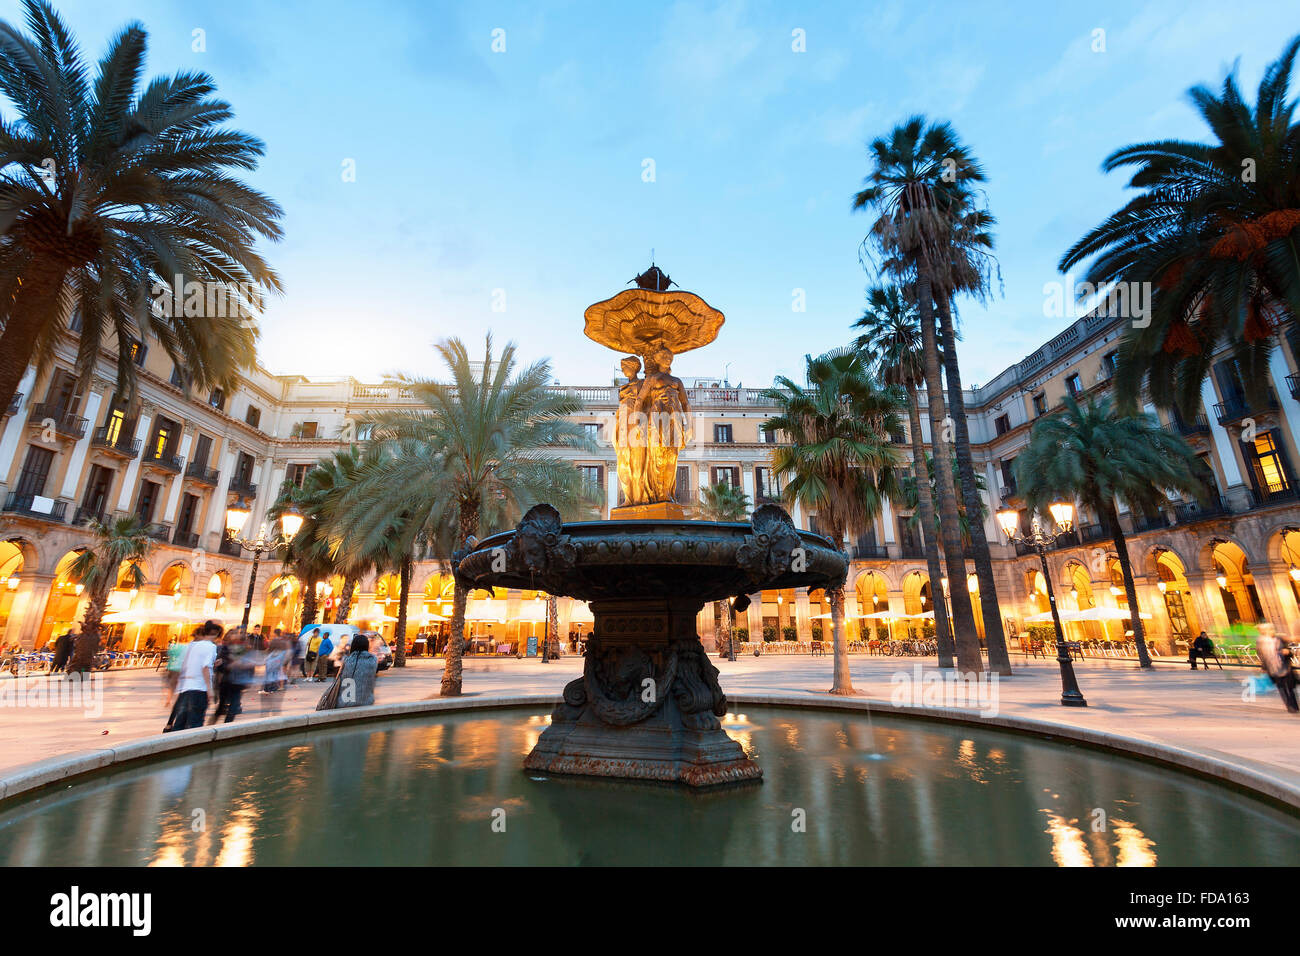 Barcelona, Placa Reial at Dusk - Stock Image